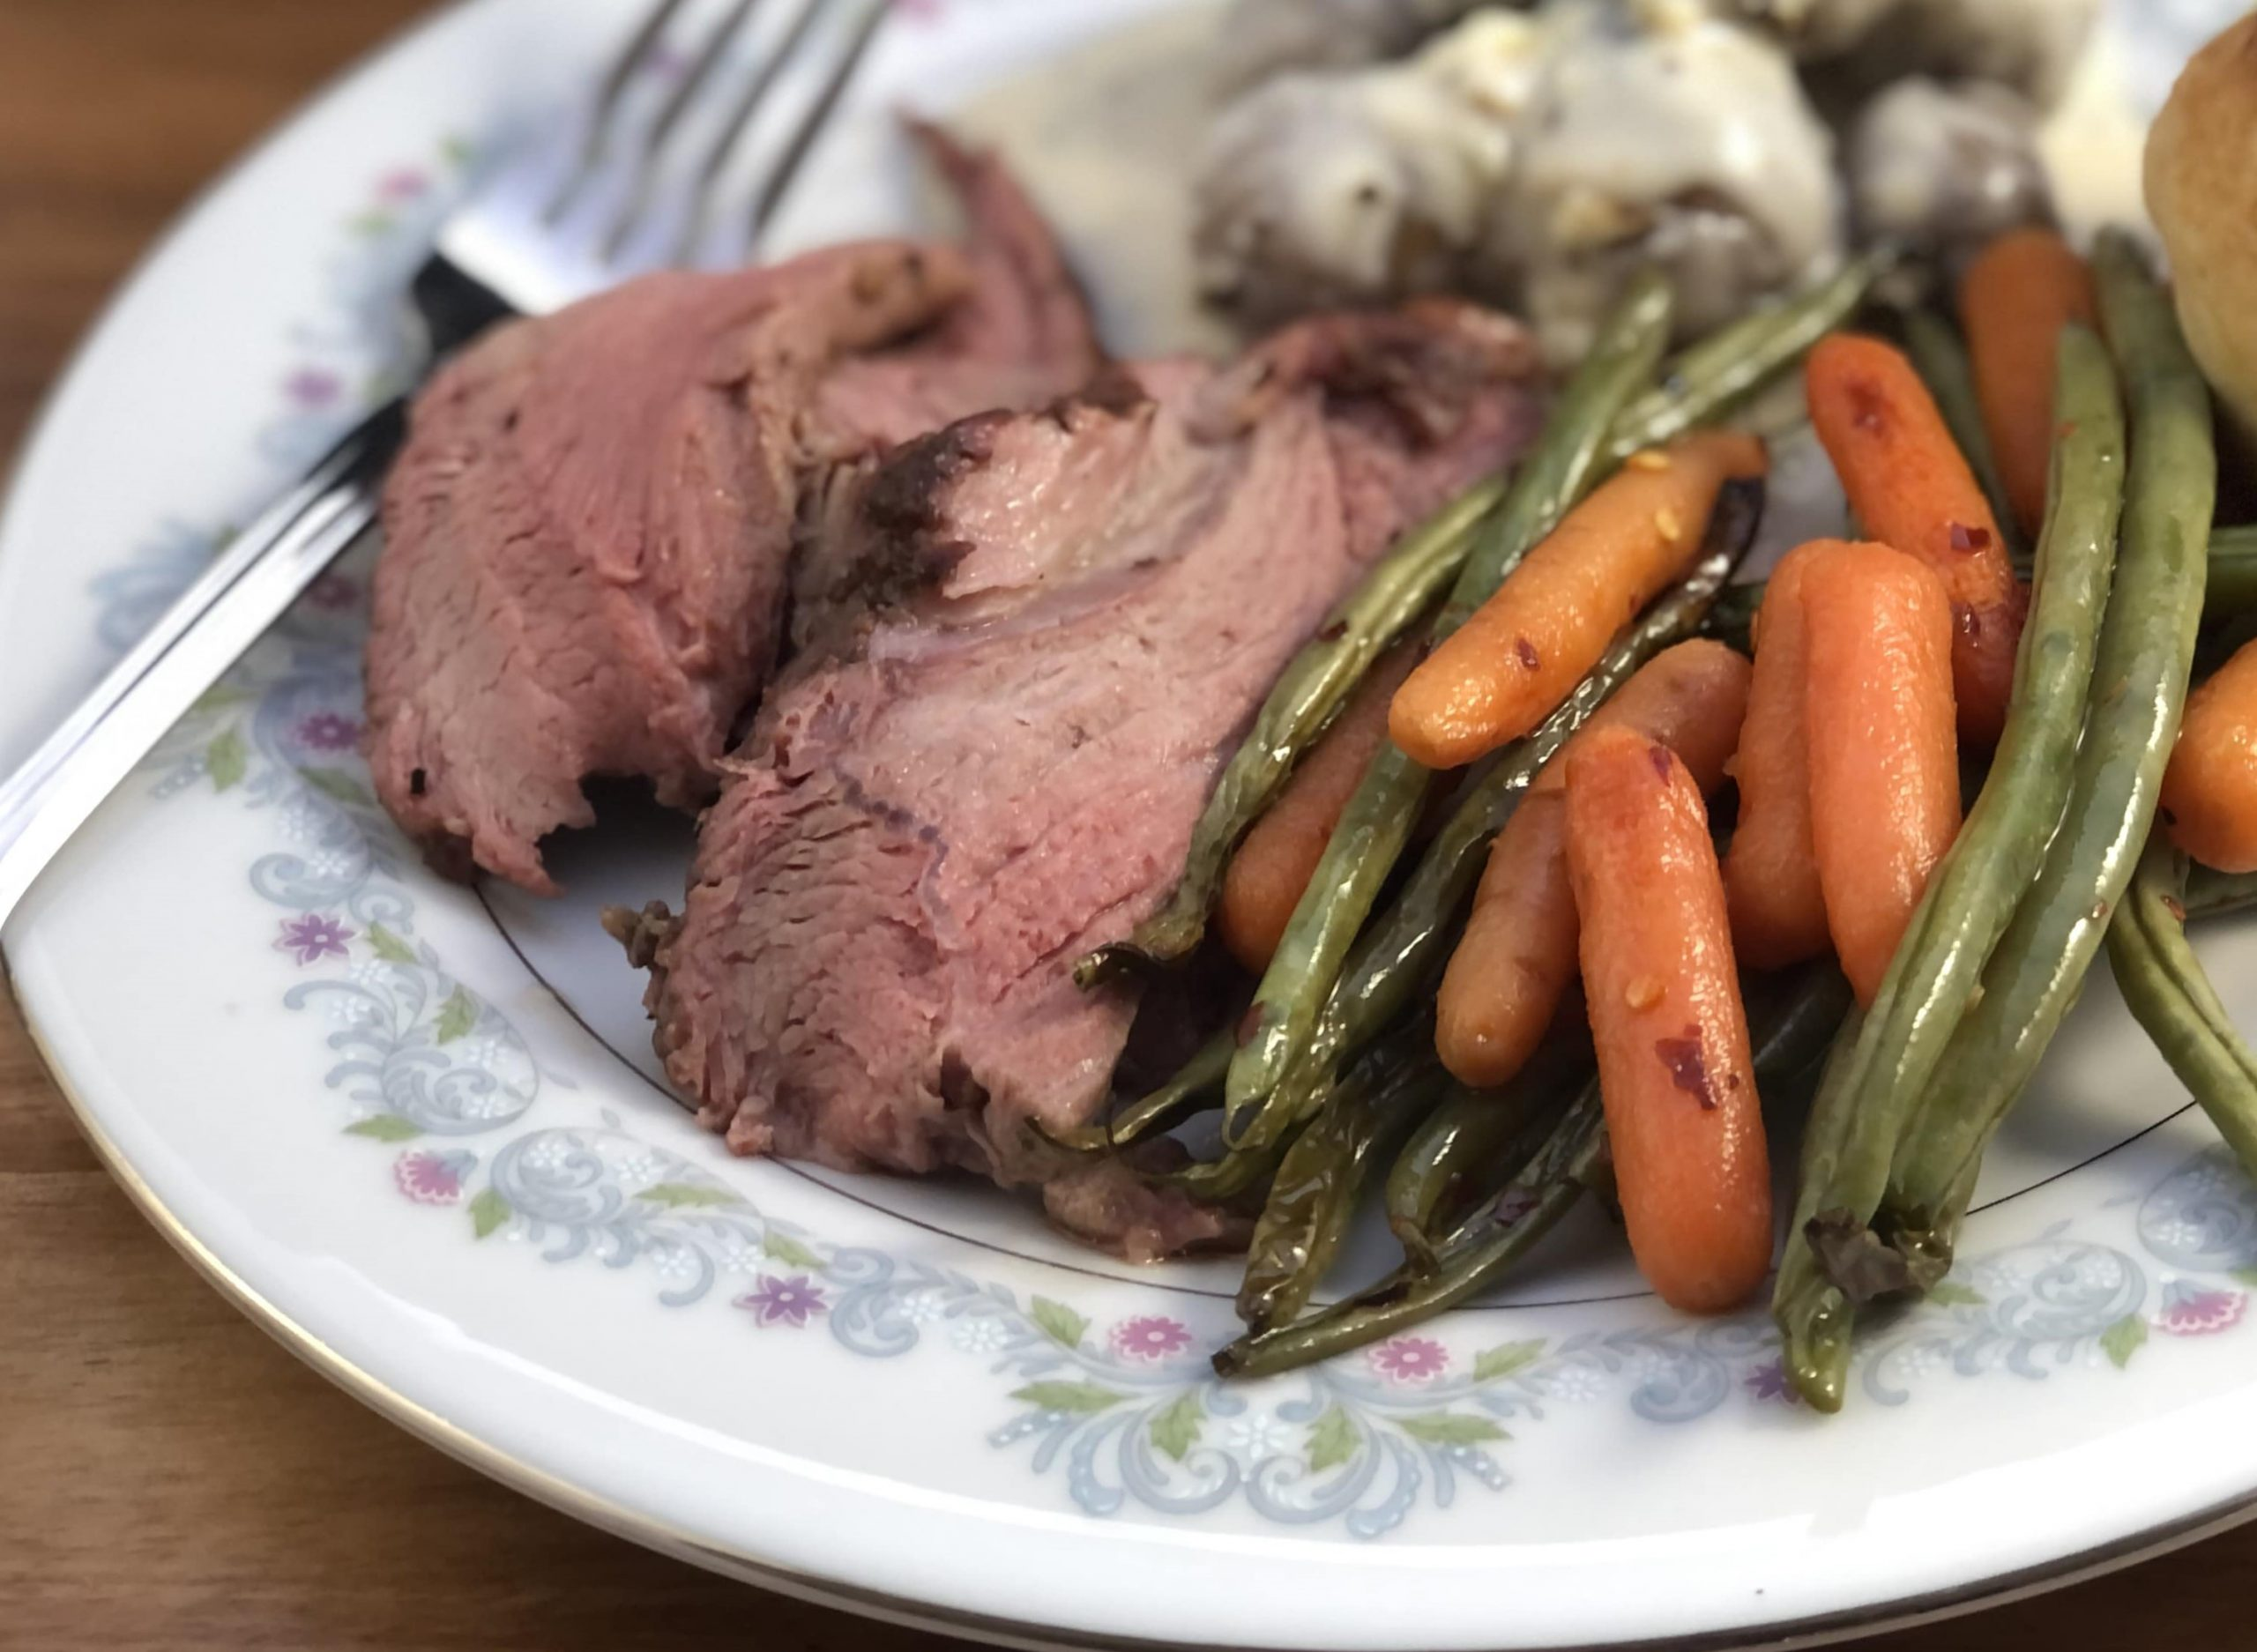 Sliced leg of lamb on a plate with green beans and carrots.